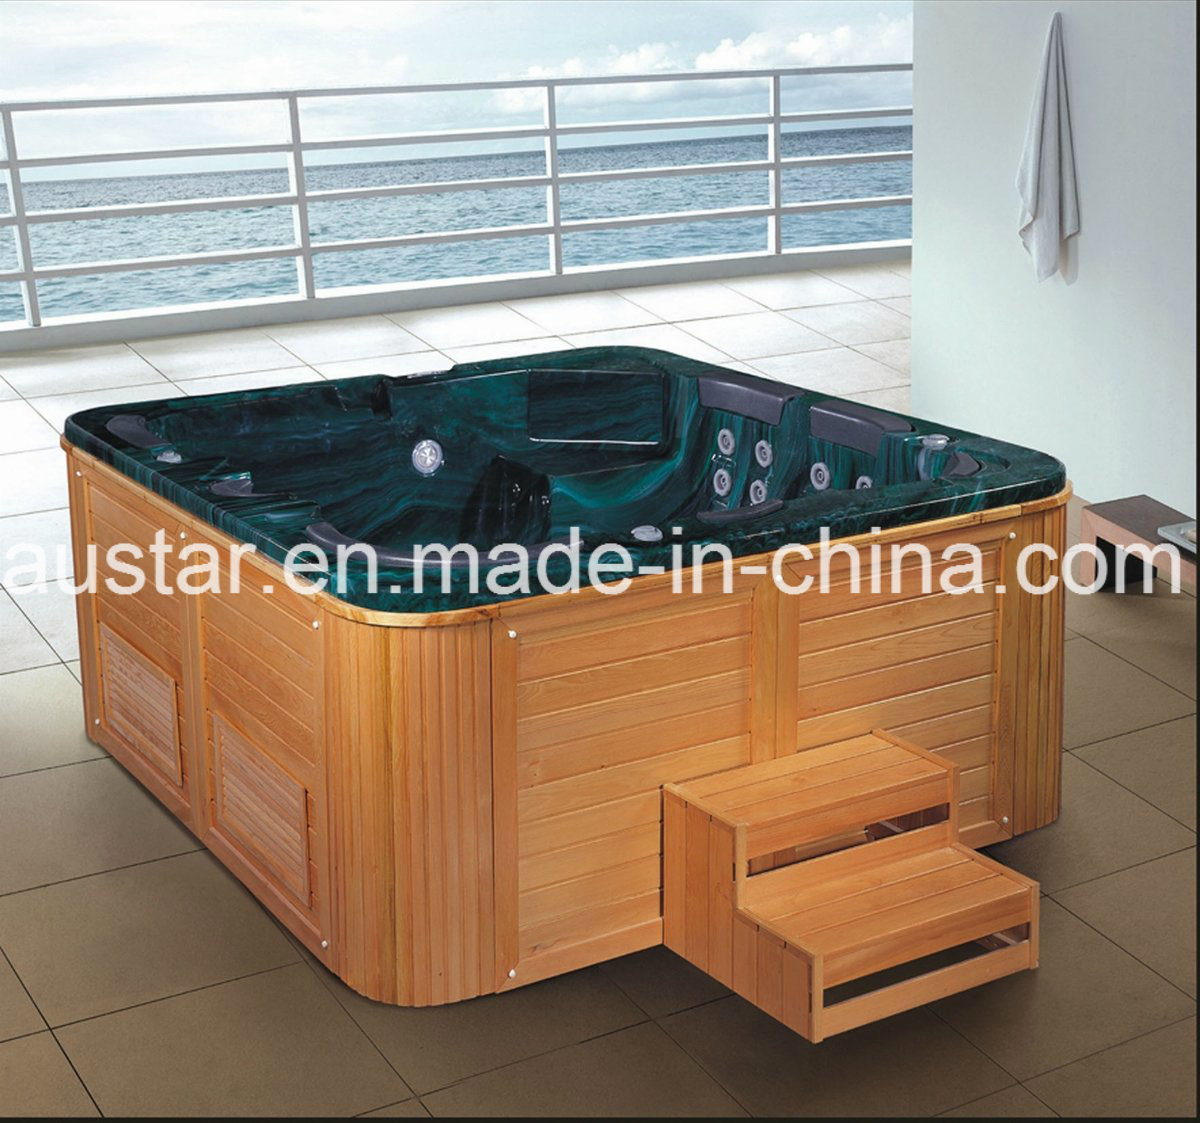 2350mm Green Outdoor SPA with Steps 7 People (AT-8801)